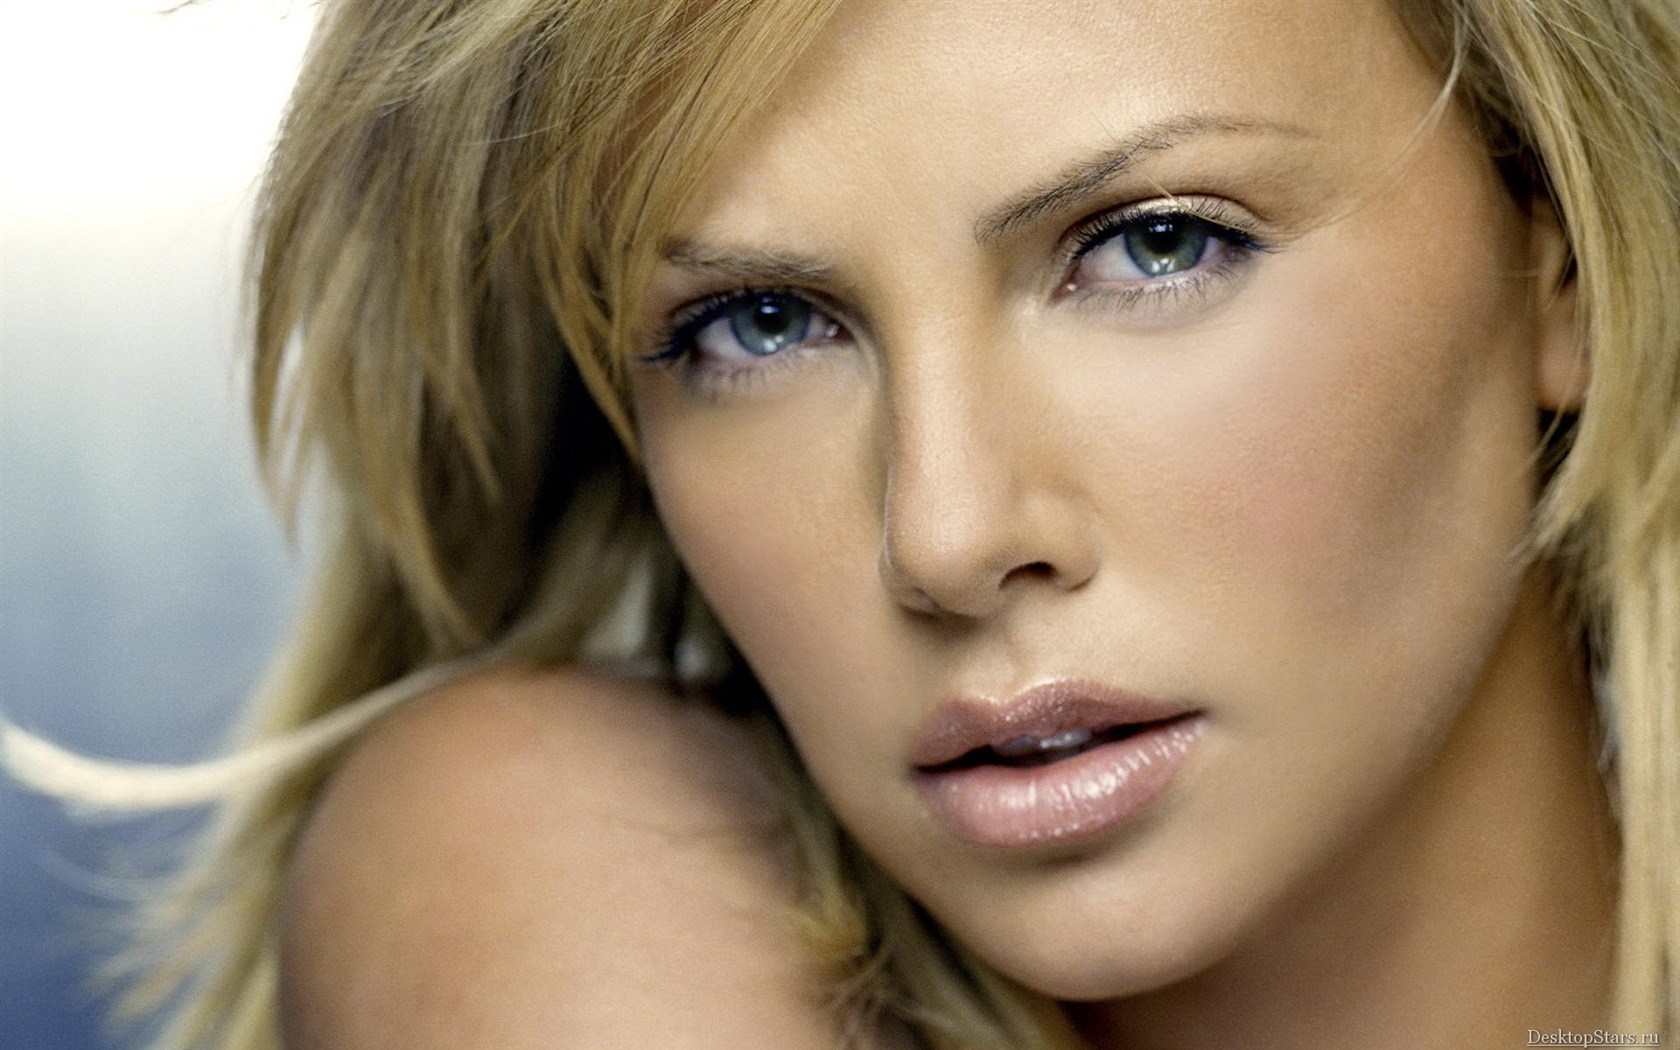 Charlize Theron #029 - 1680x1050 Wallpapers Pictures Photos Images